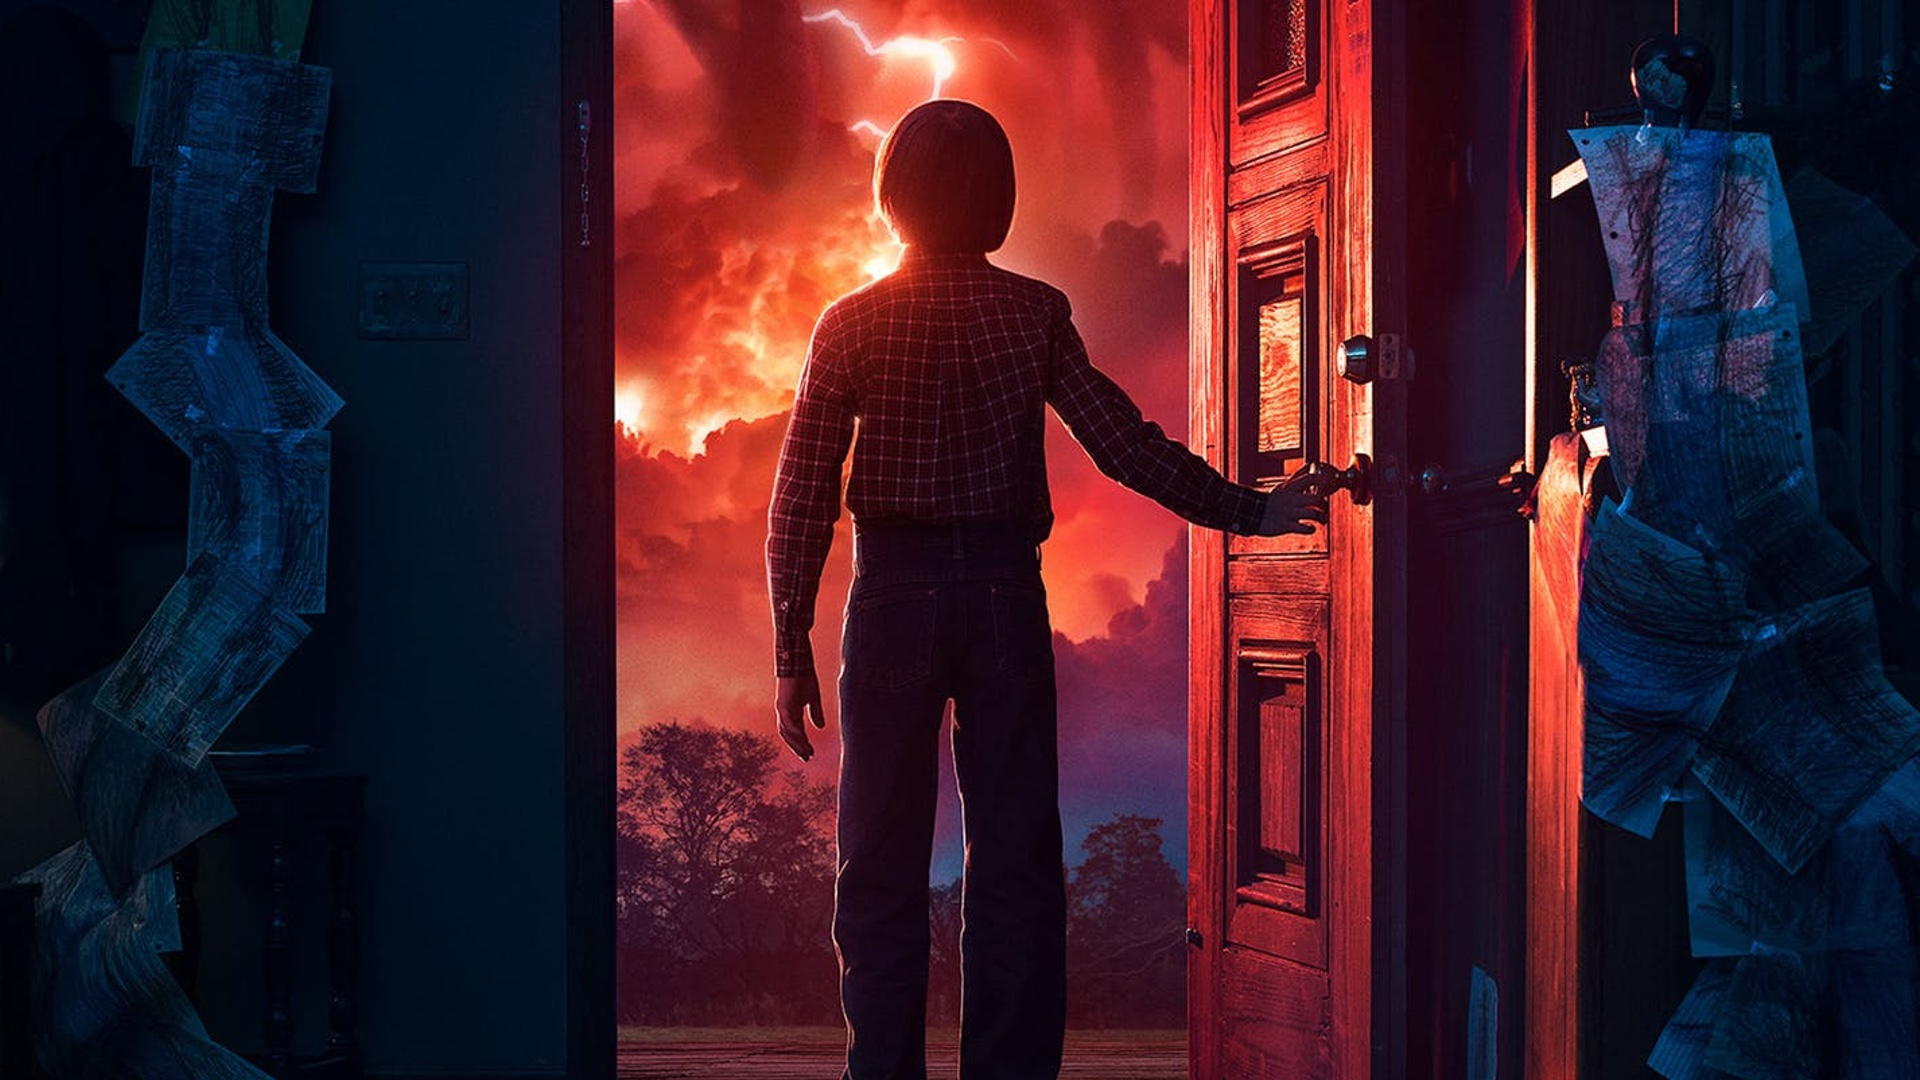 Details On How The Ending Of Stranger Things Season 2 Sets Up